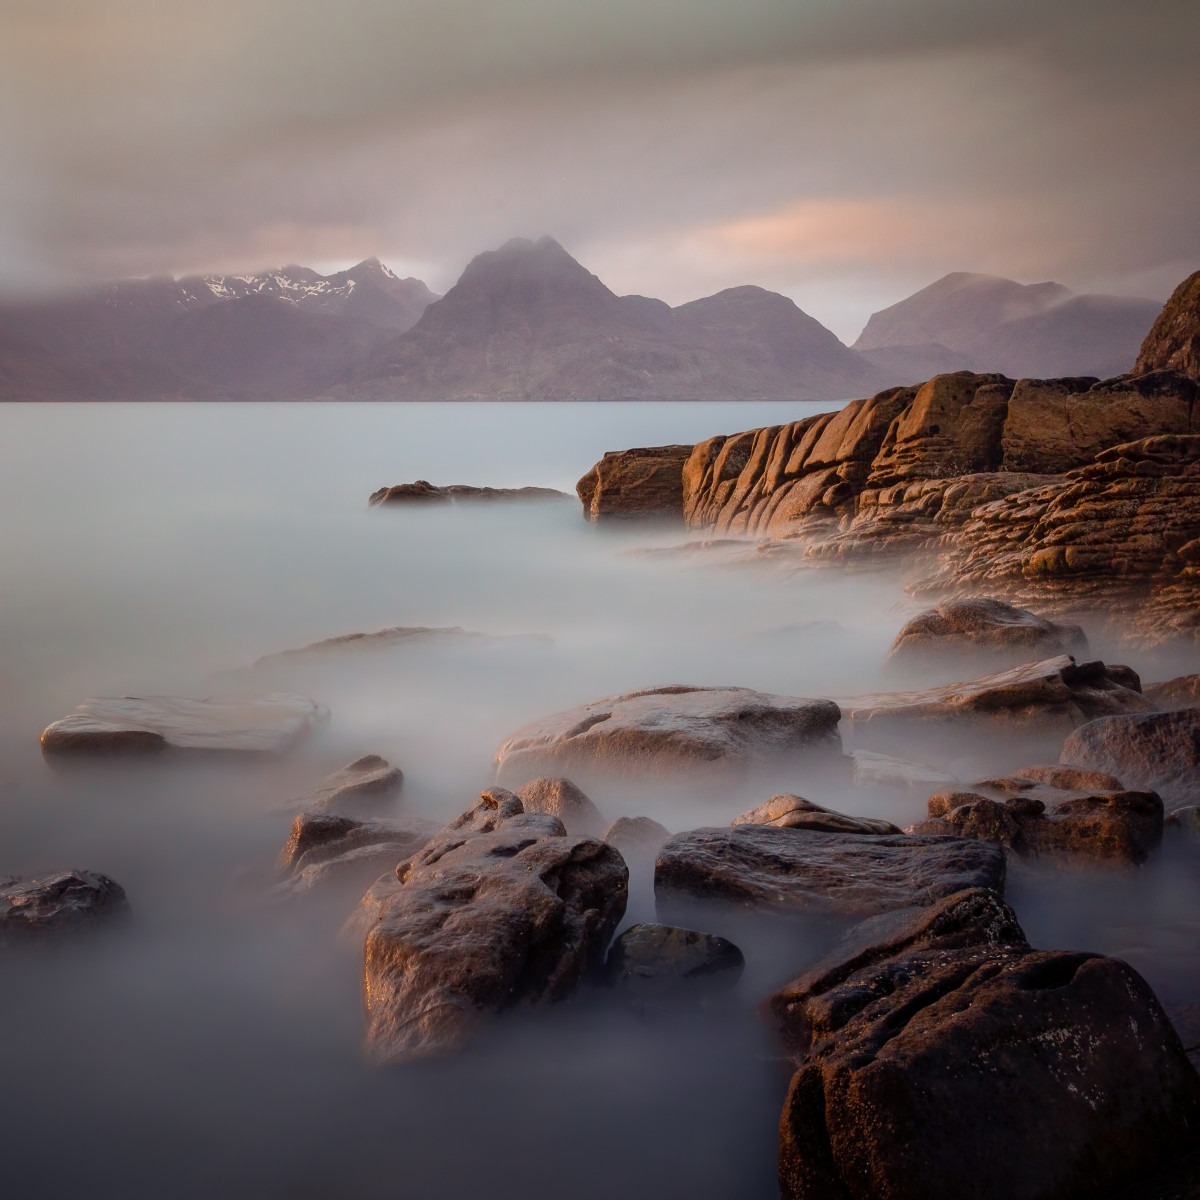 PDI - Elgol Evening by Darren Brown (12 marks)